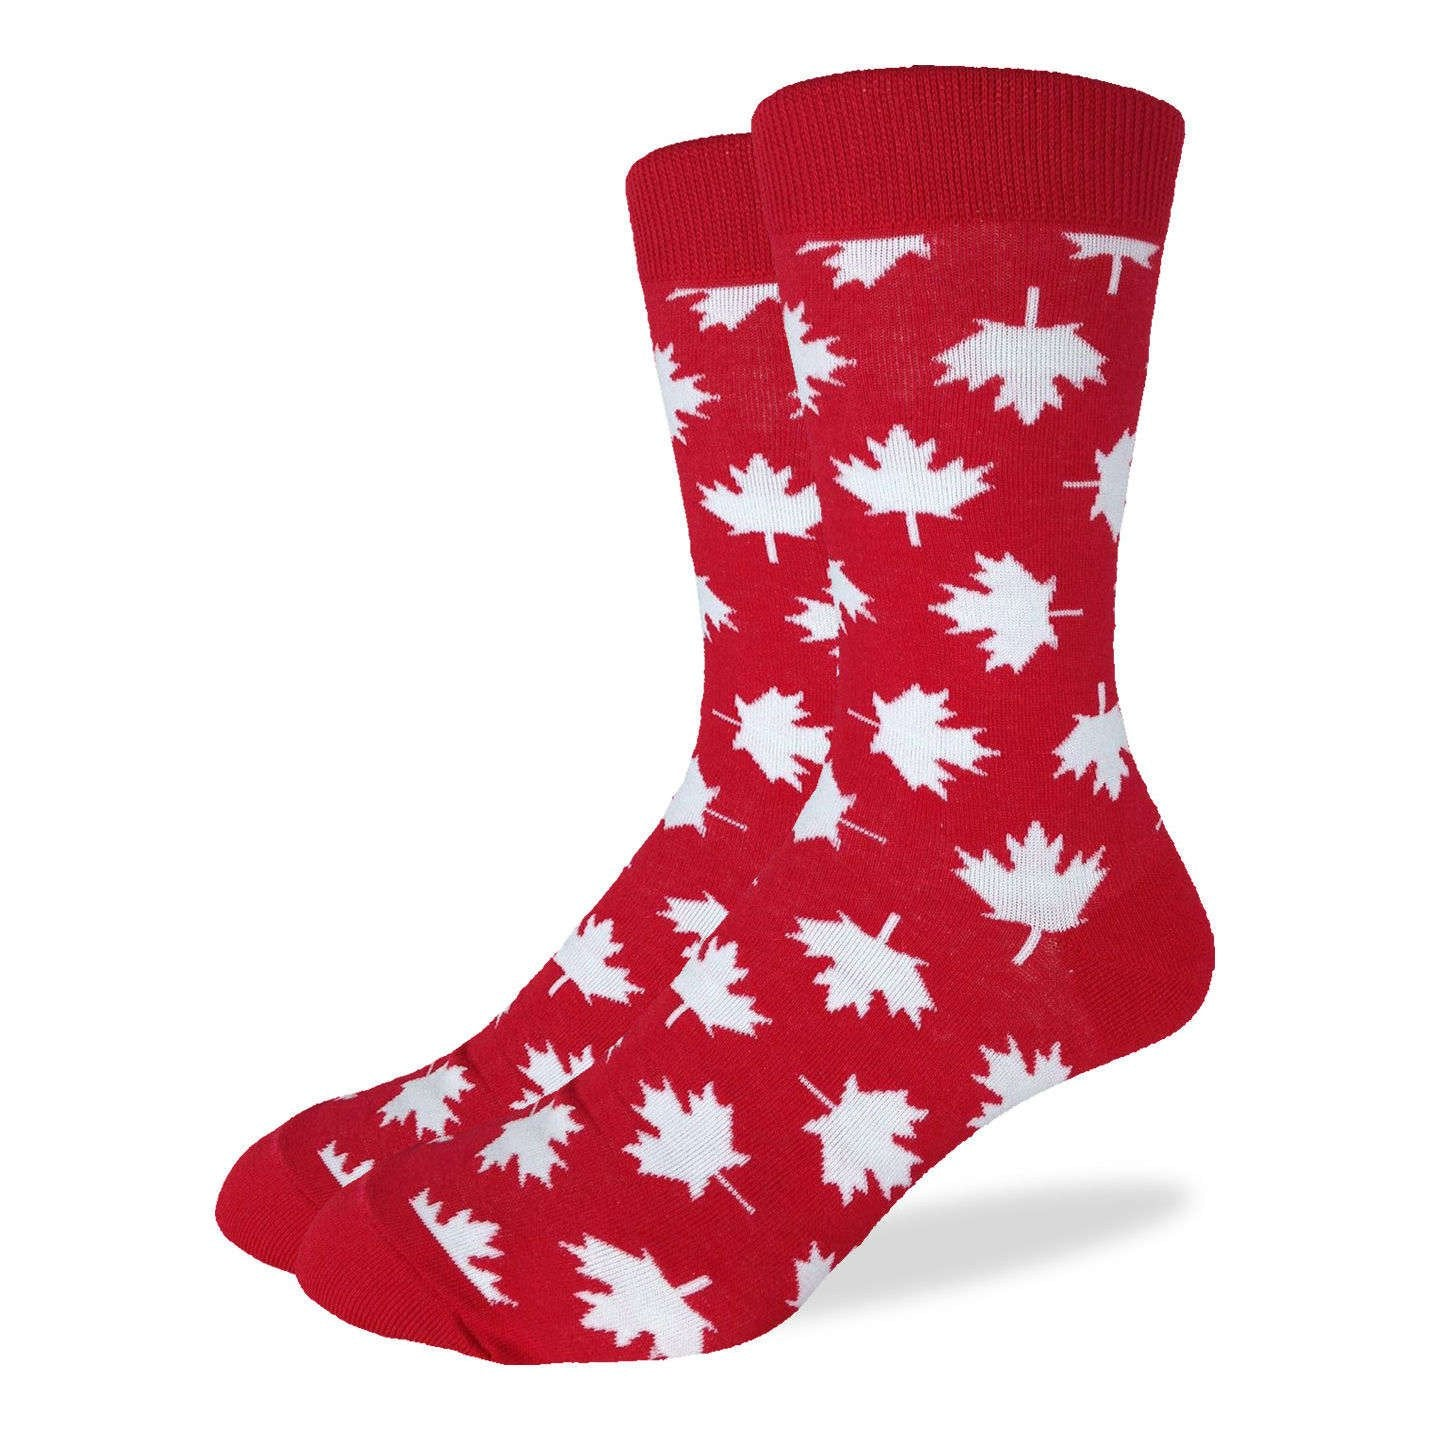 Men's King Size Canada Maple Leaf Socks - Good Luck Sock